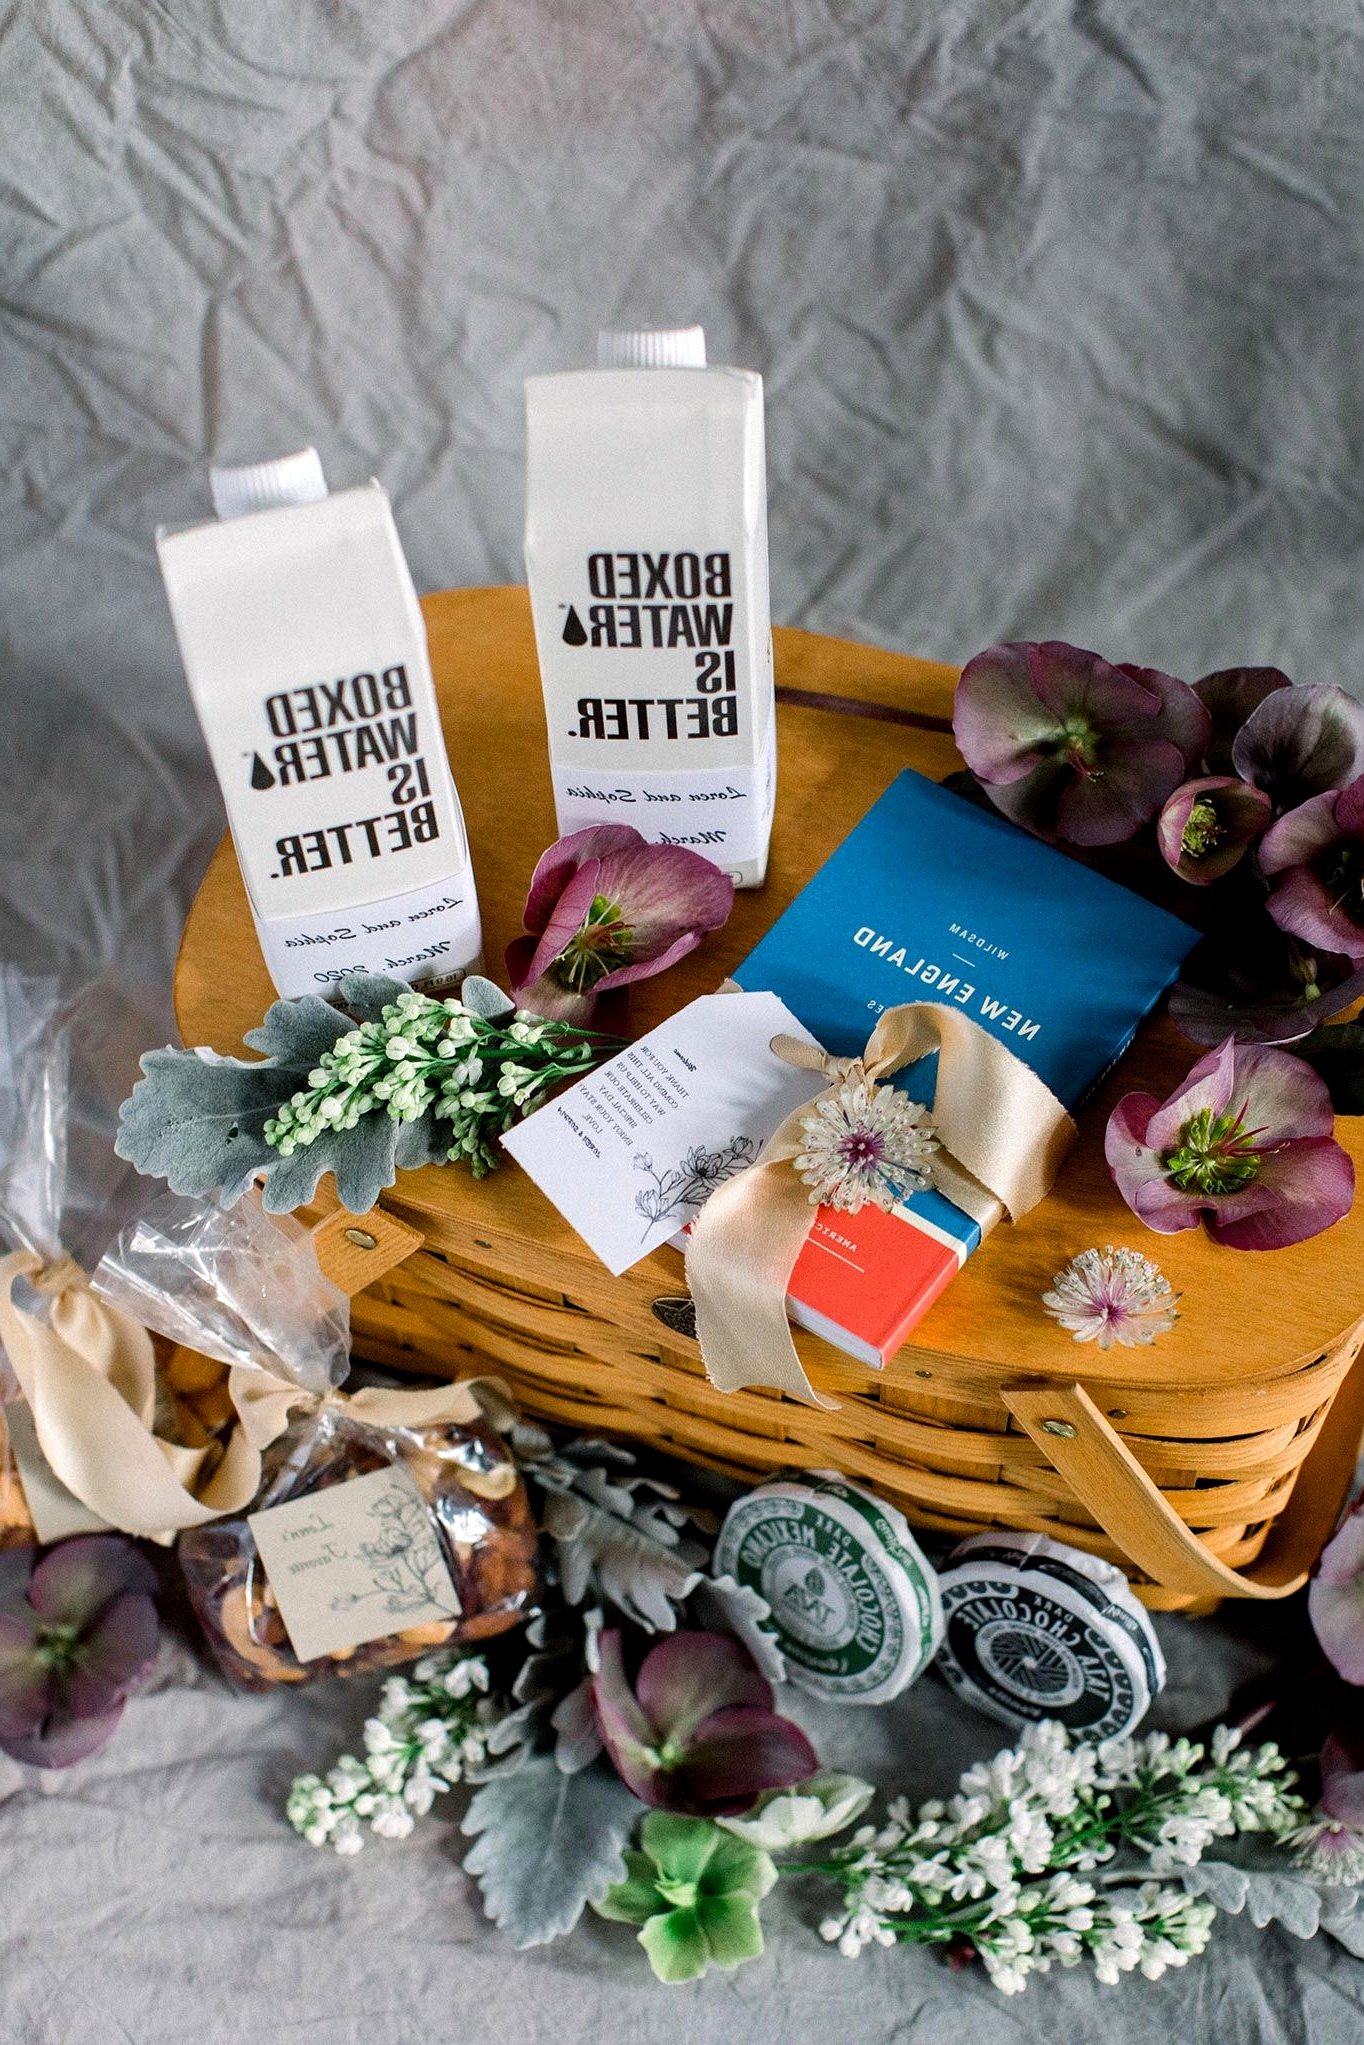 New England wedding welcome basket with boxed water, New England guide, hellebore and more